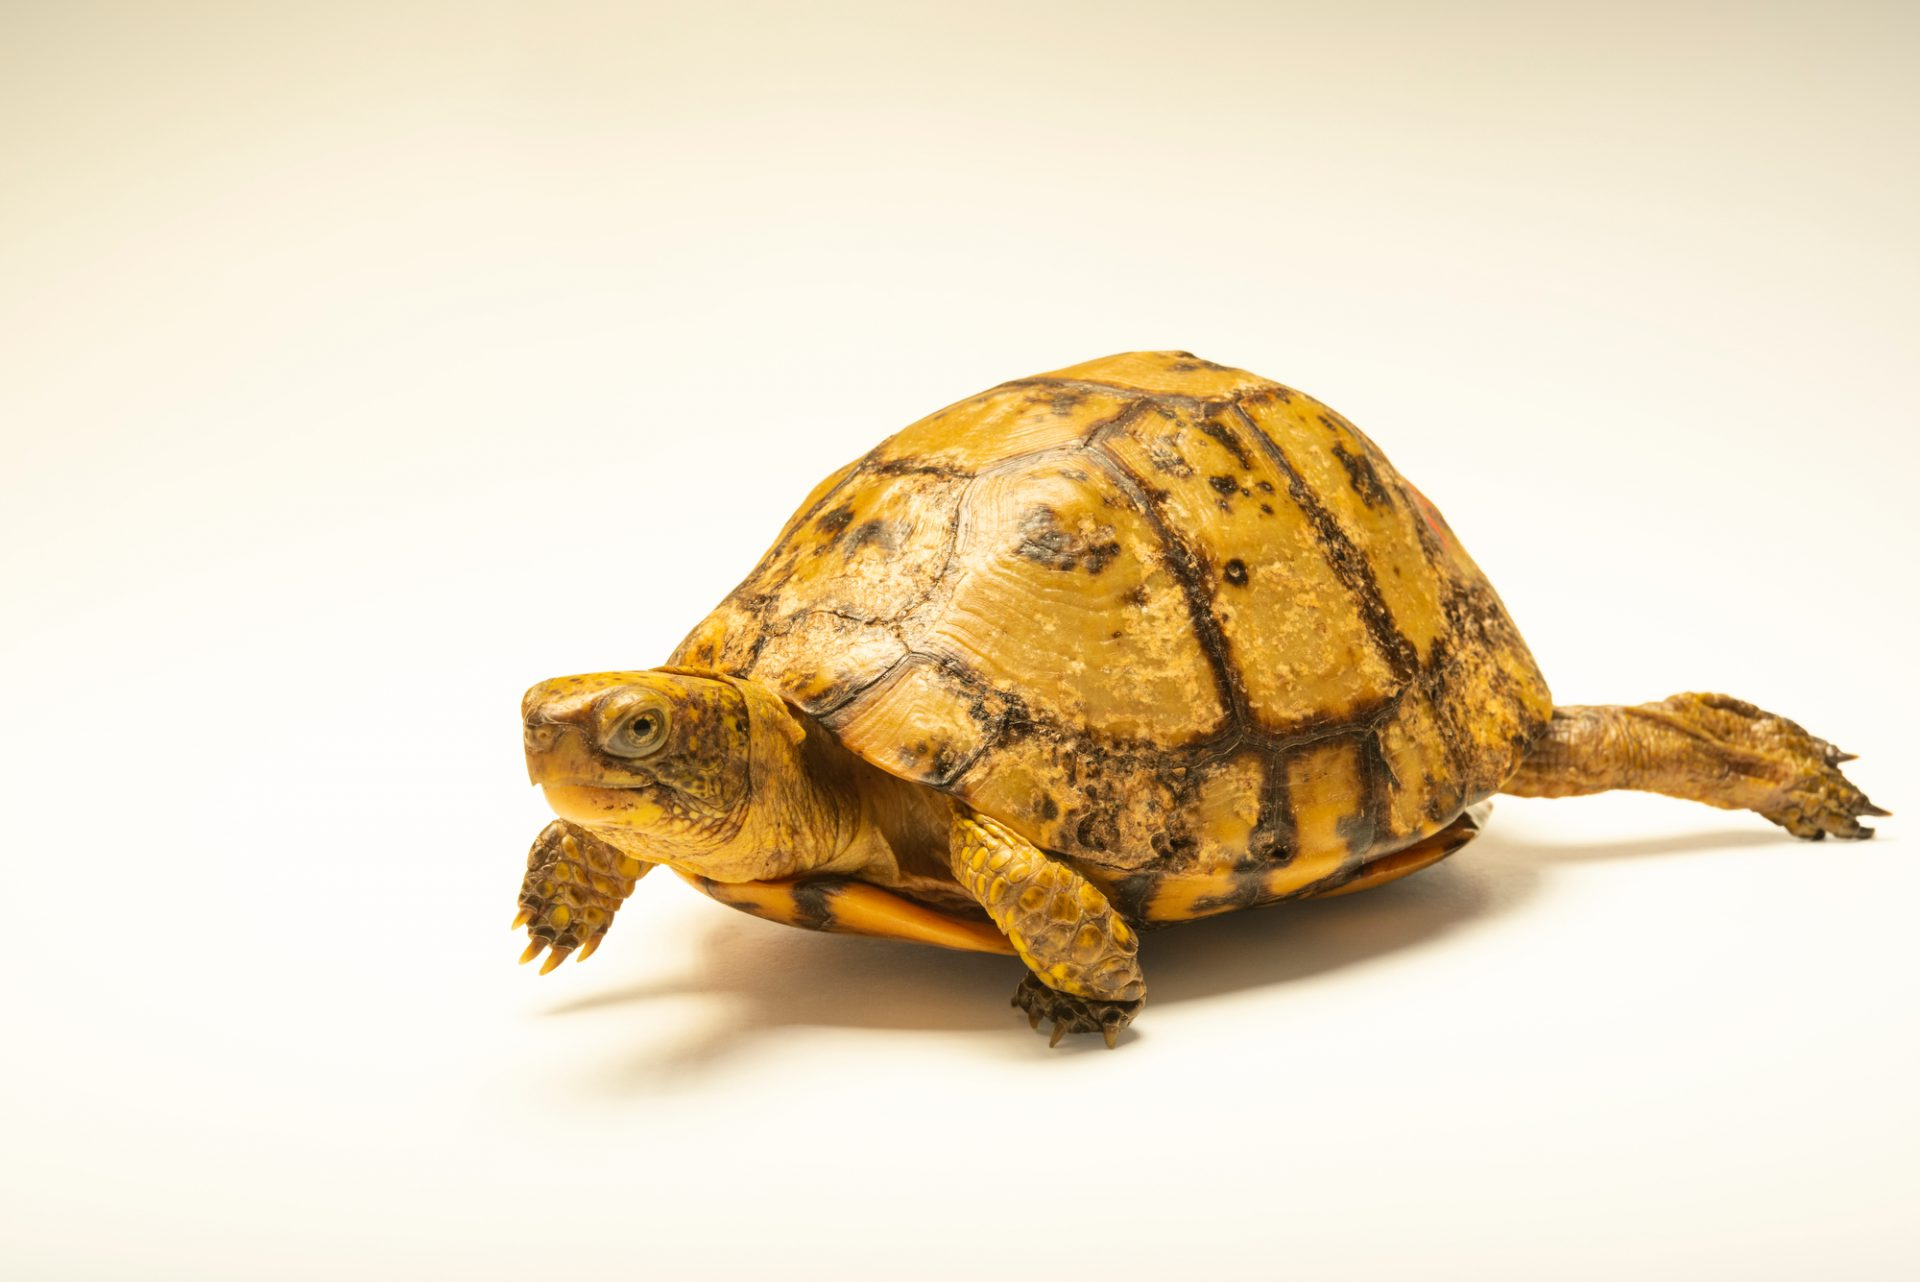 Photo: Yucatan box turtle (Terrapene carolina yucatana) at the Oklahoma City Zoo.